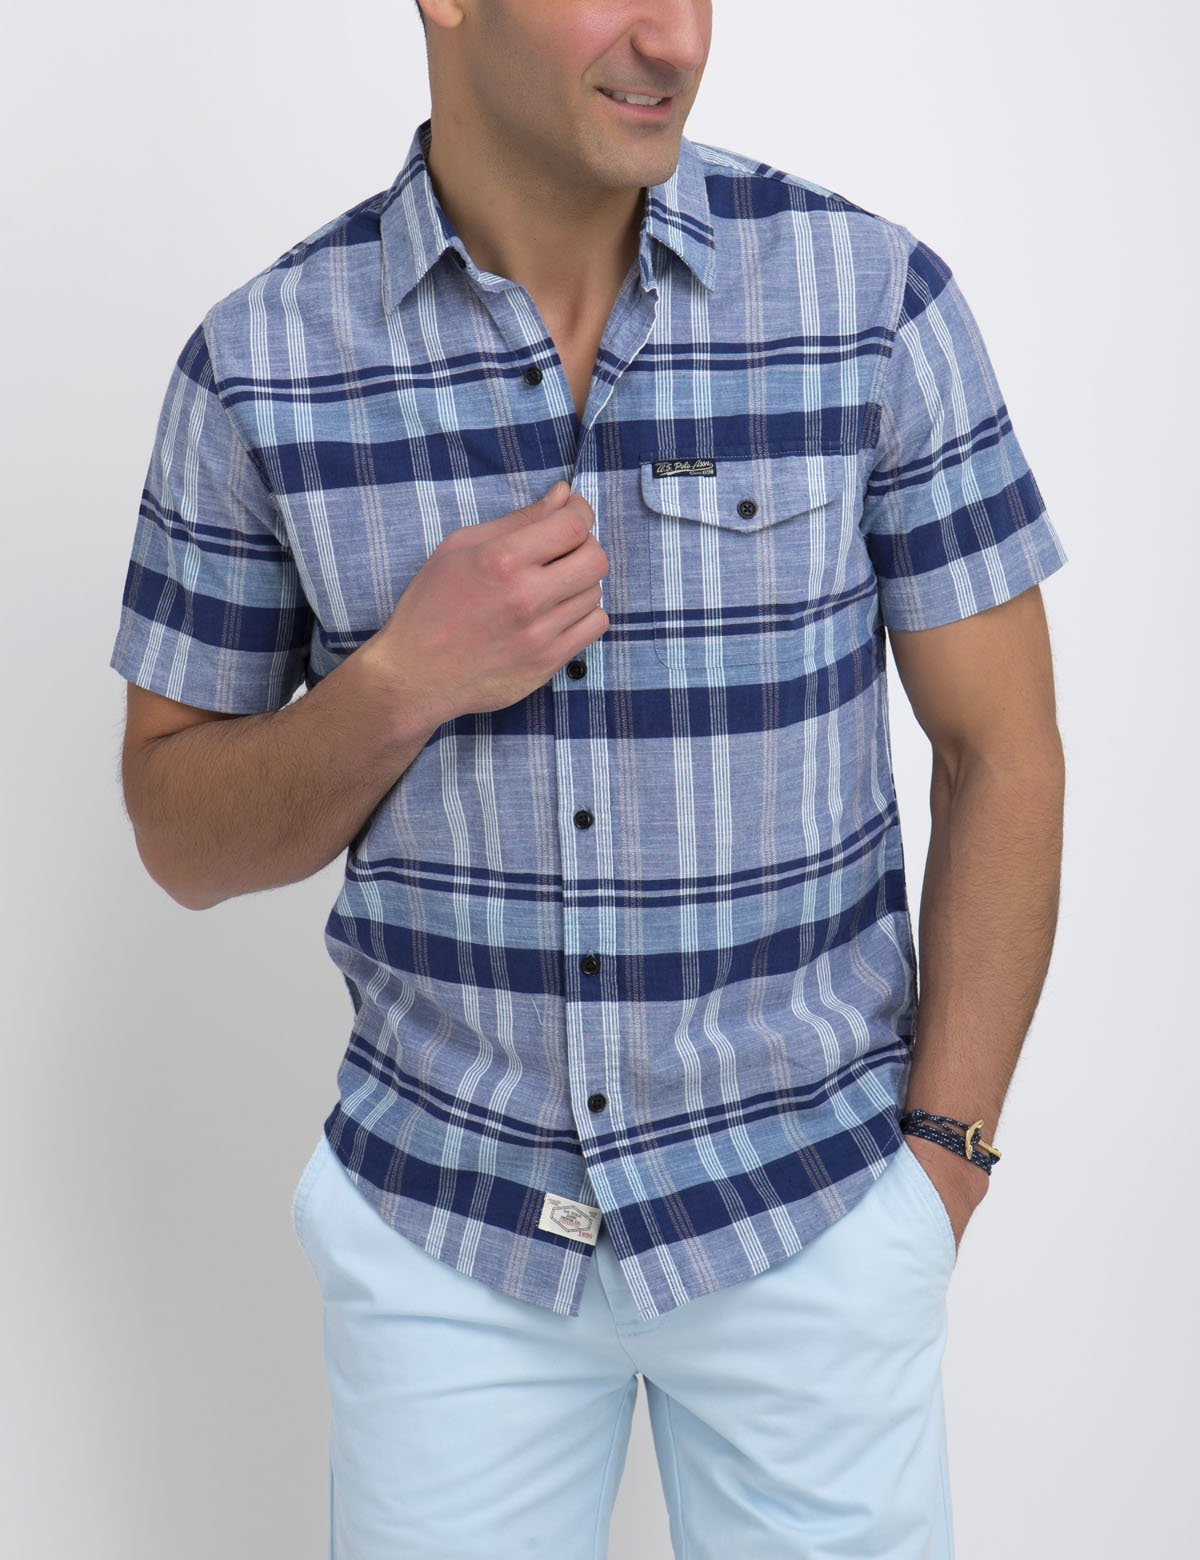 SLIM FIT PLAID SHIRT - U.S. Polo Assn.